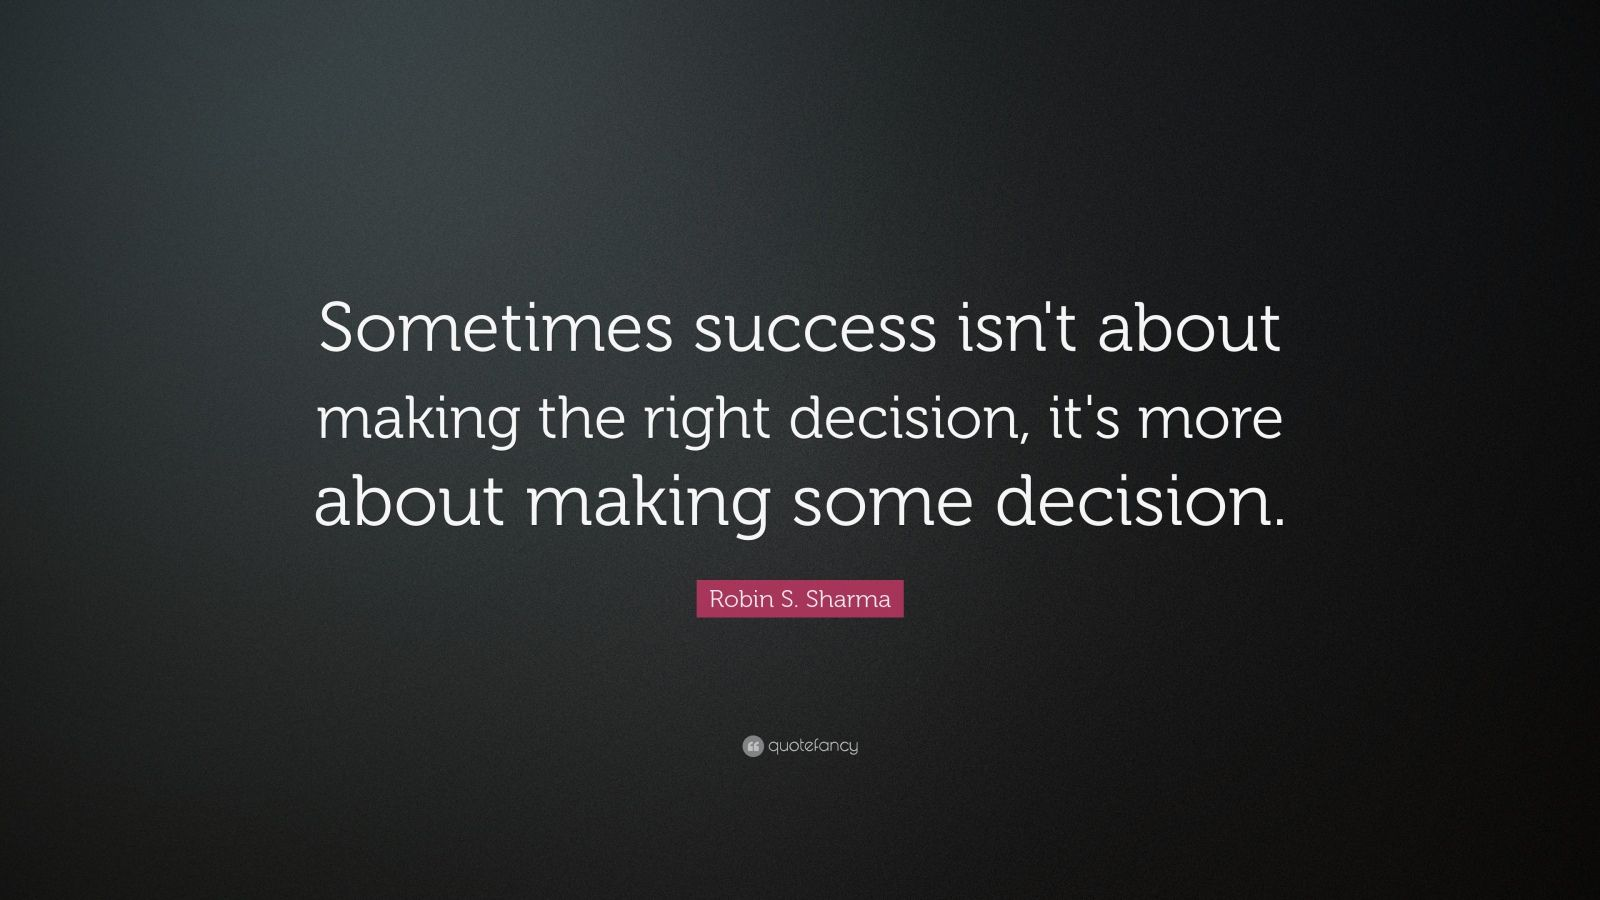 Robin S. Sharma Quote: Sometimes success isn't about making the ...